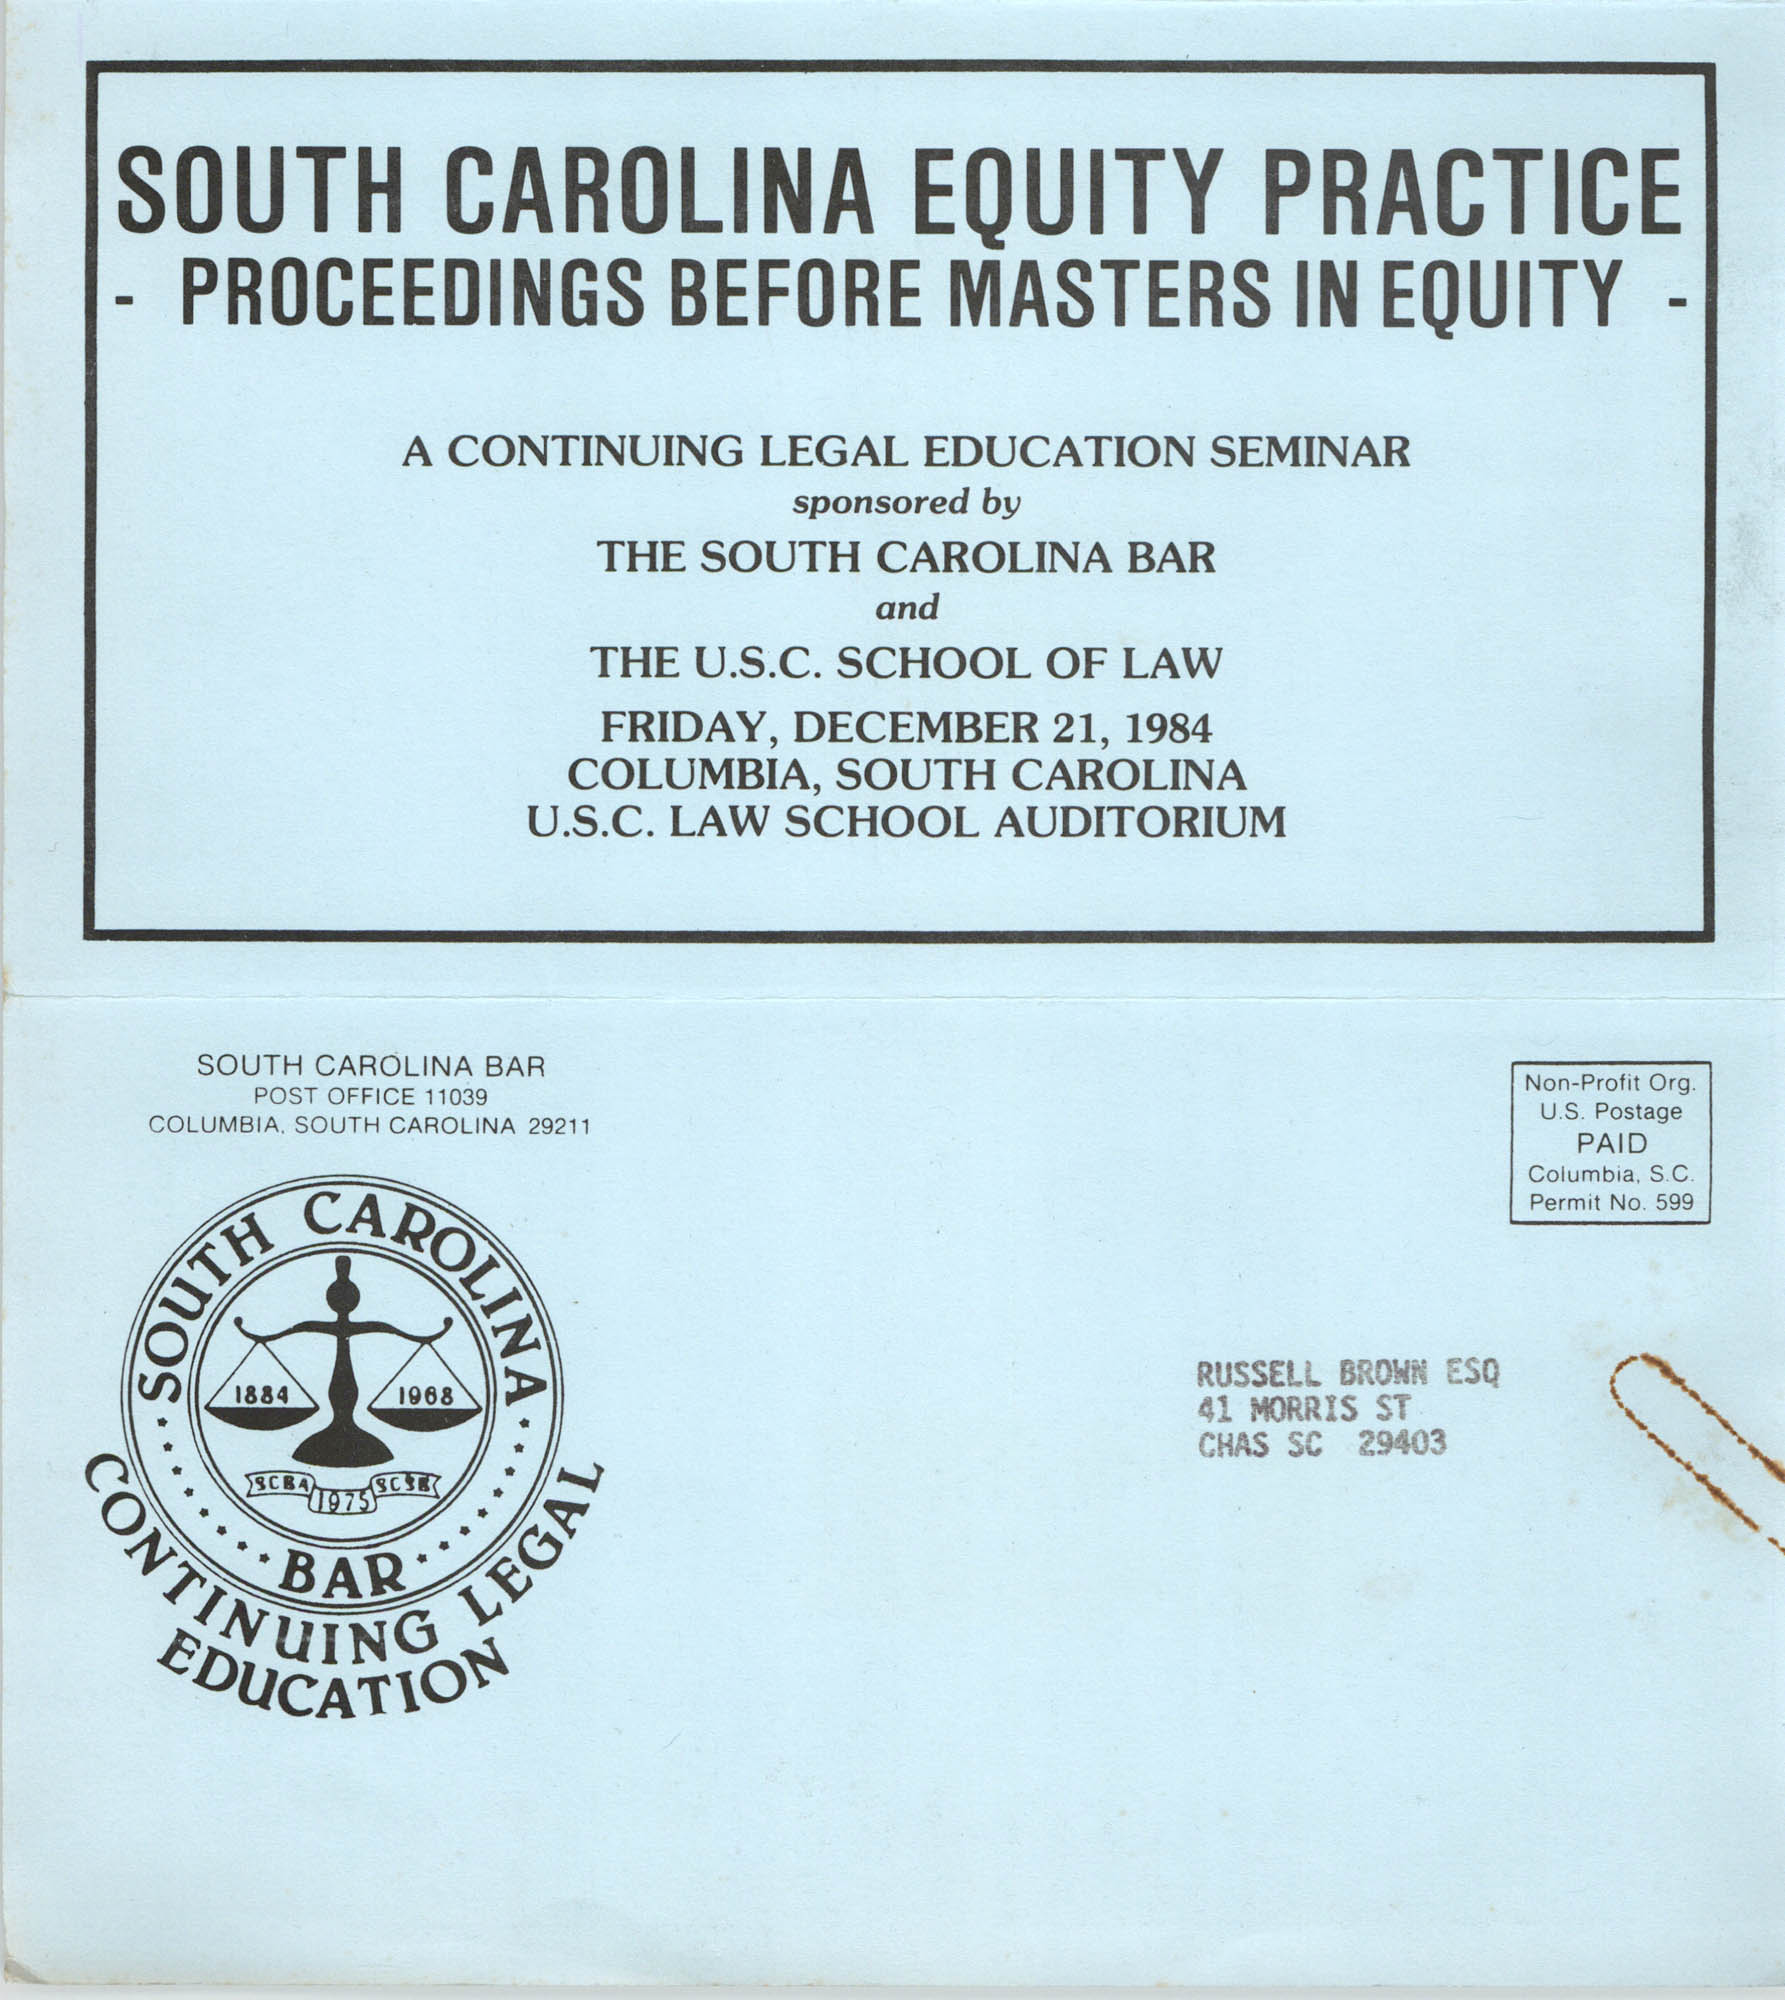 South Carolina Equity Practice, Continuing Education Seminar Pamphlet, December 21, 1984, Russell Brown